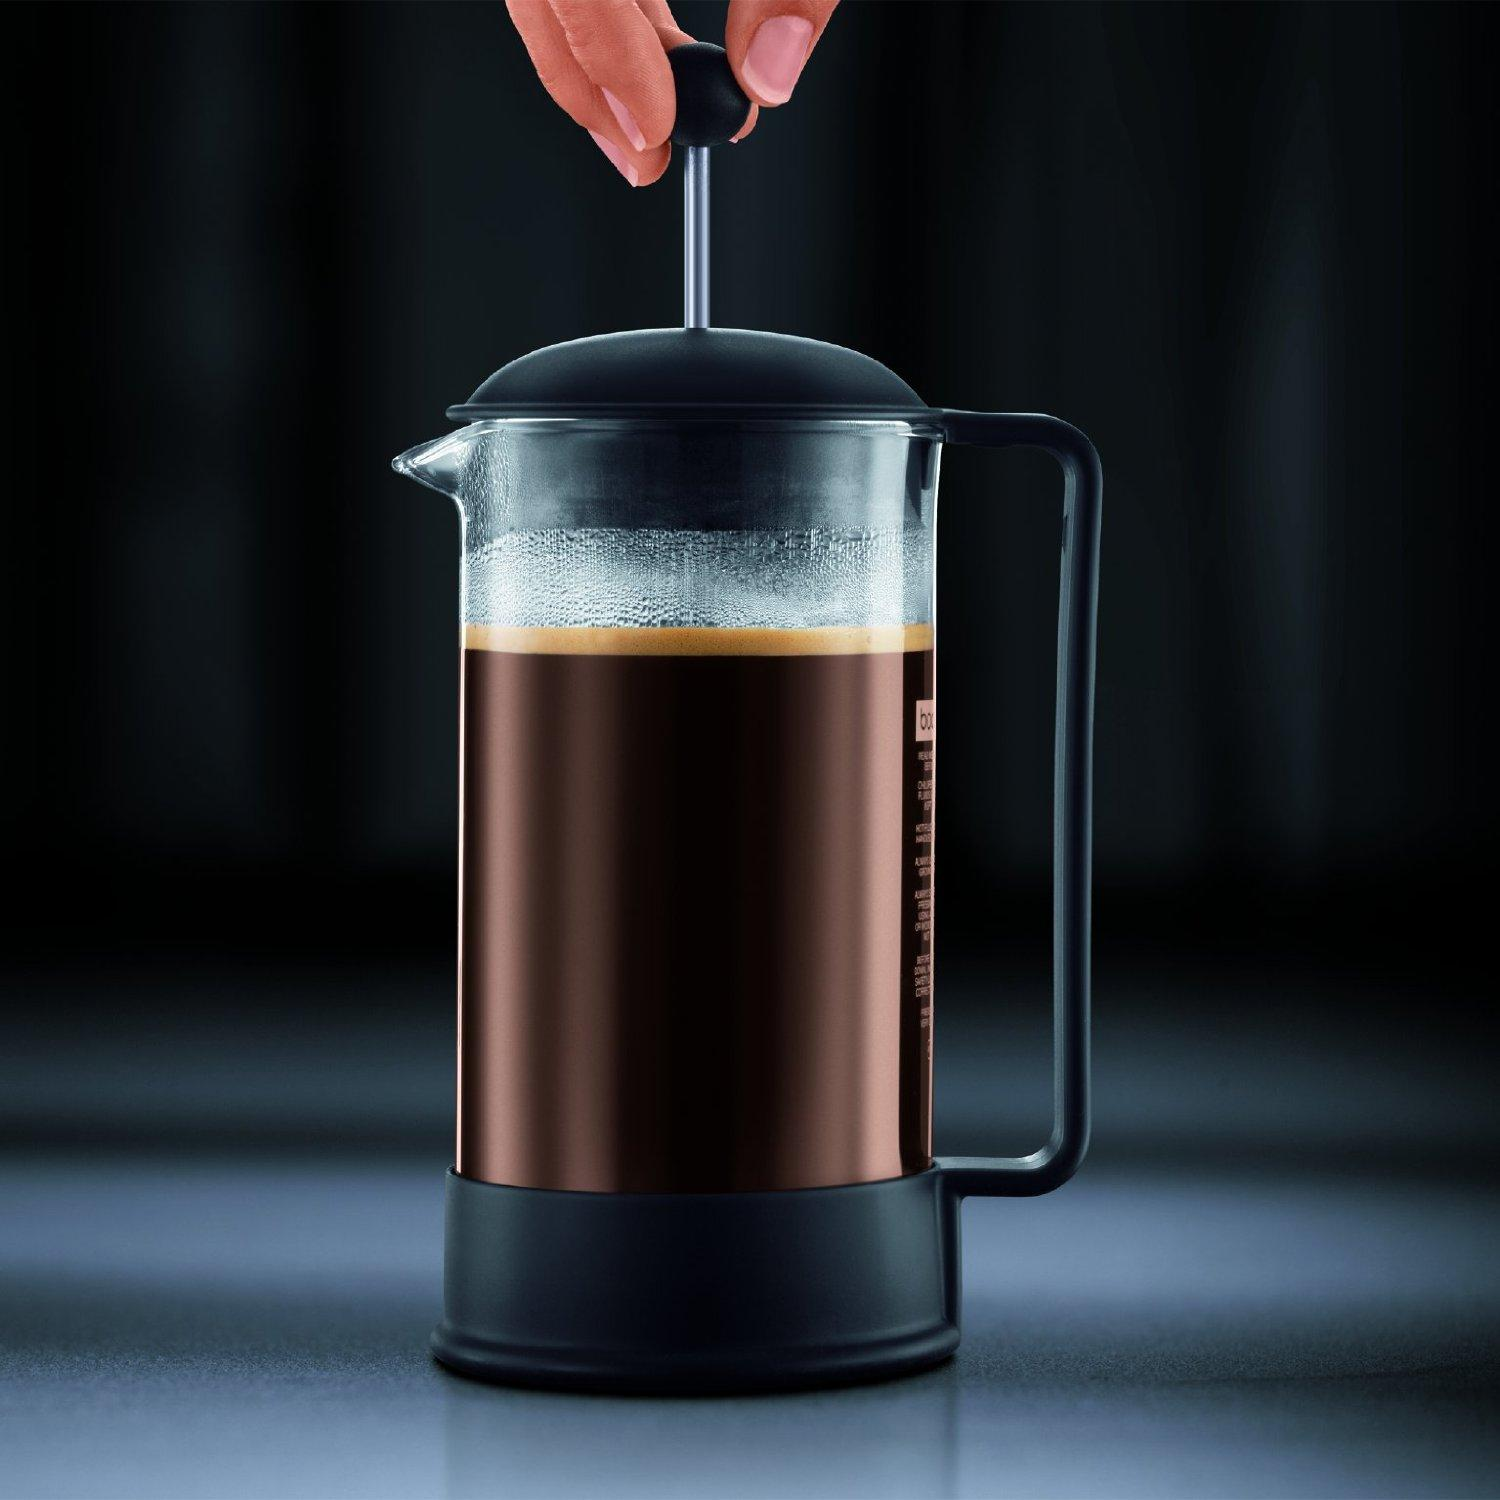 Bodum Brazil 12 Cup French Press Coffee Maker